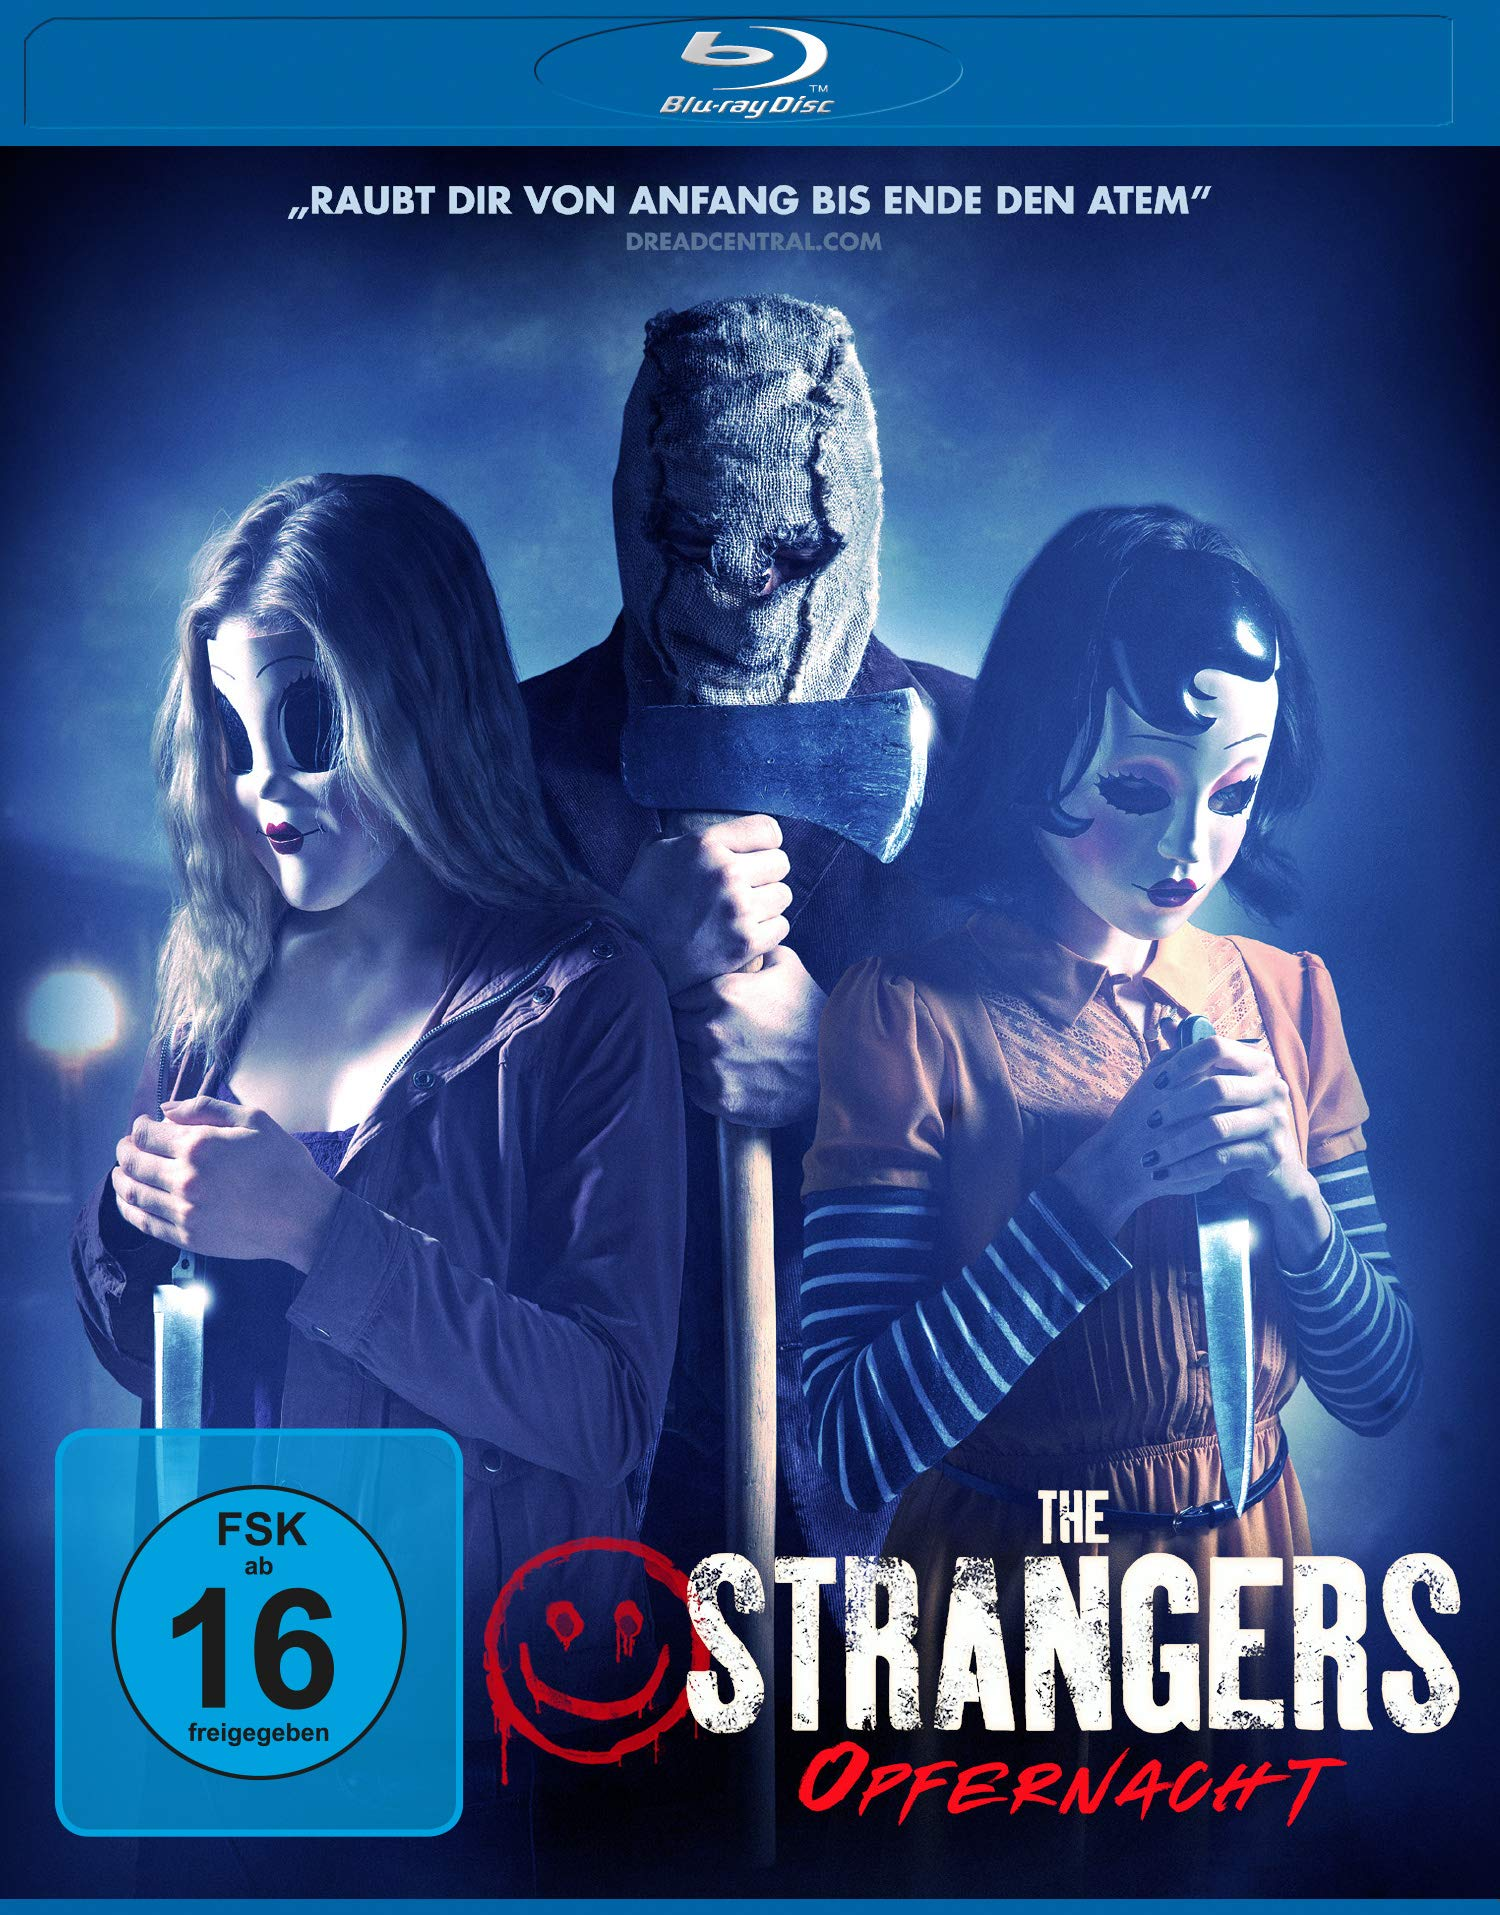 download The.Strangers.Opfernacht.2018.German.DL.1080p.BluRay.x264-ENCOUNTERS